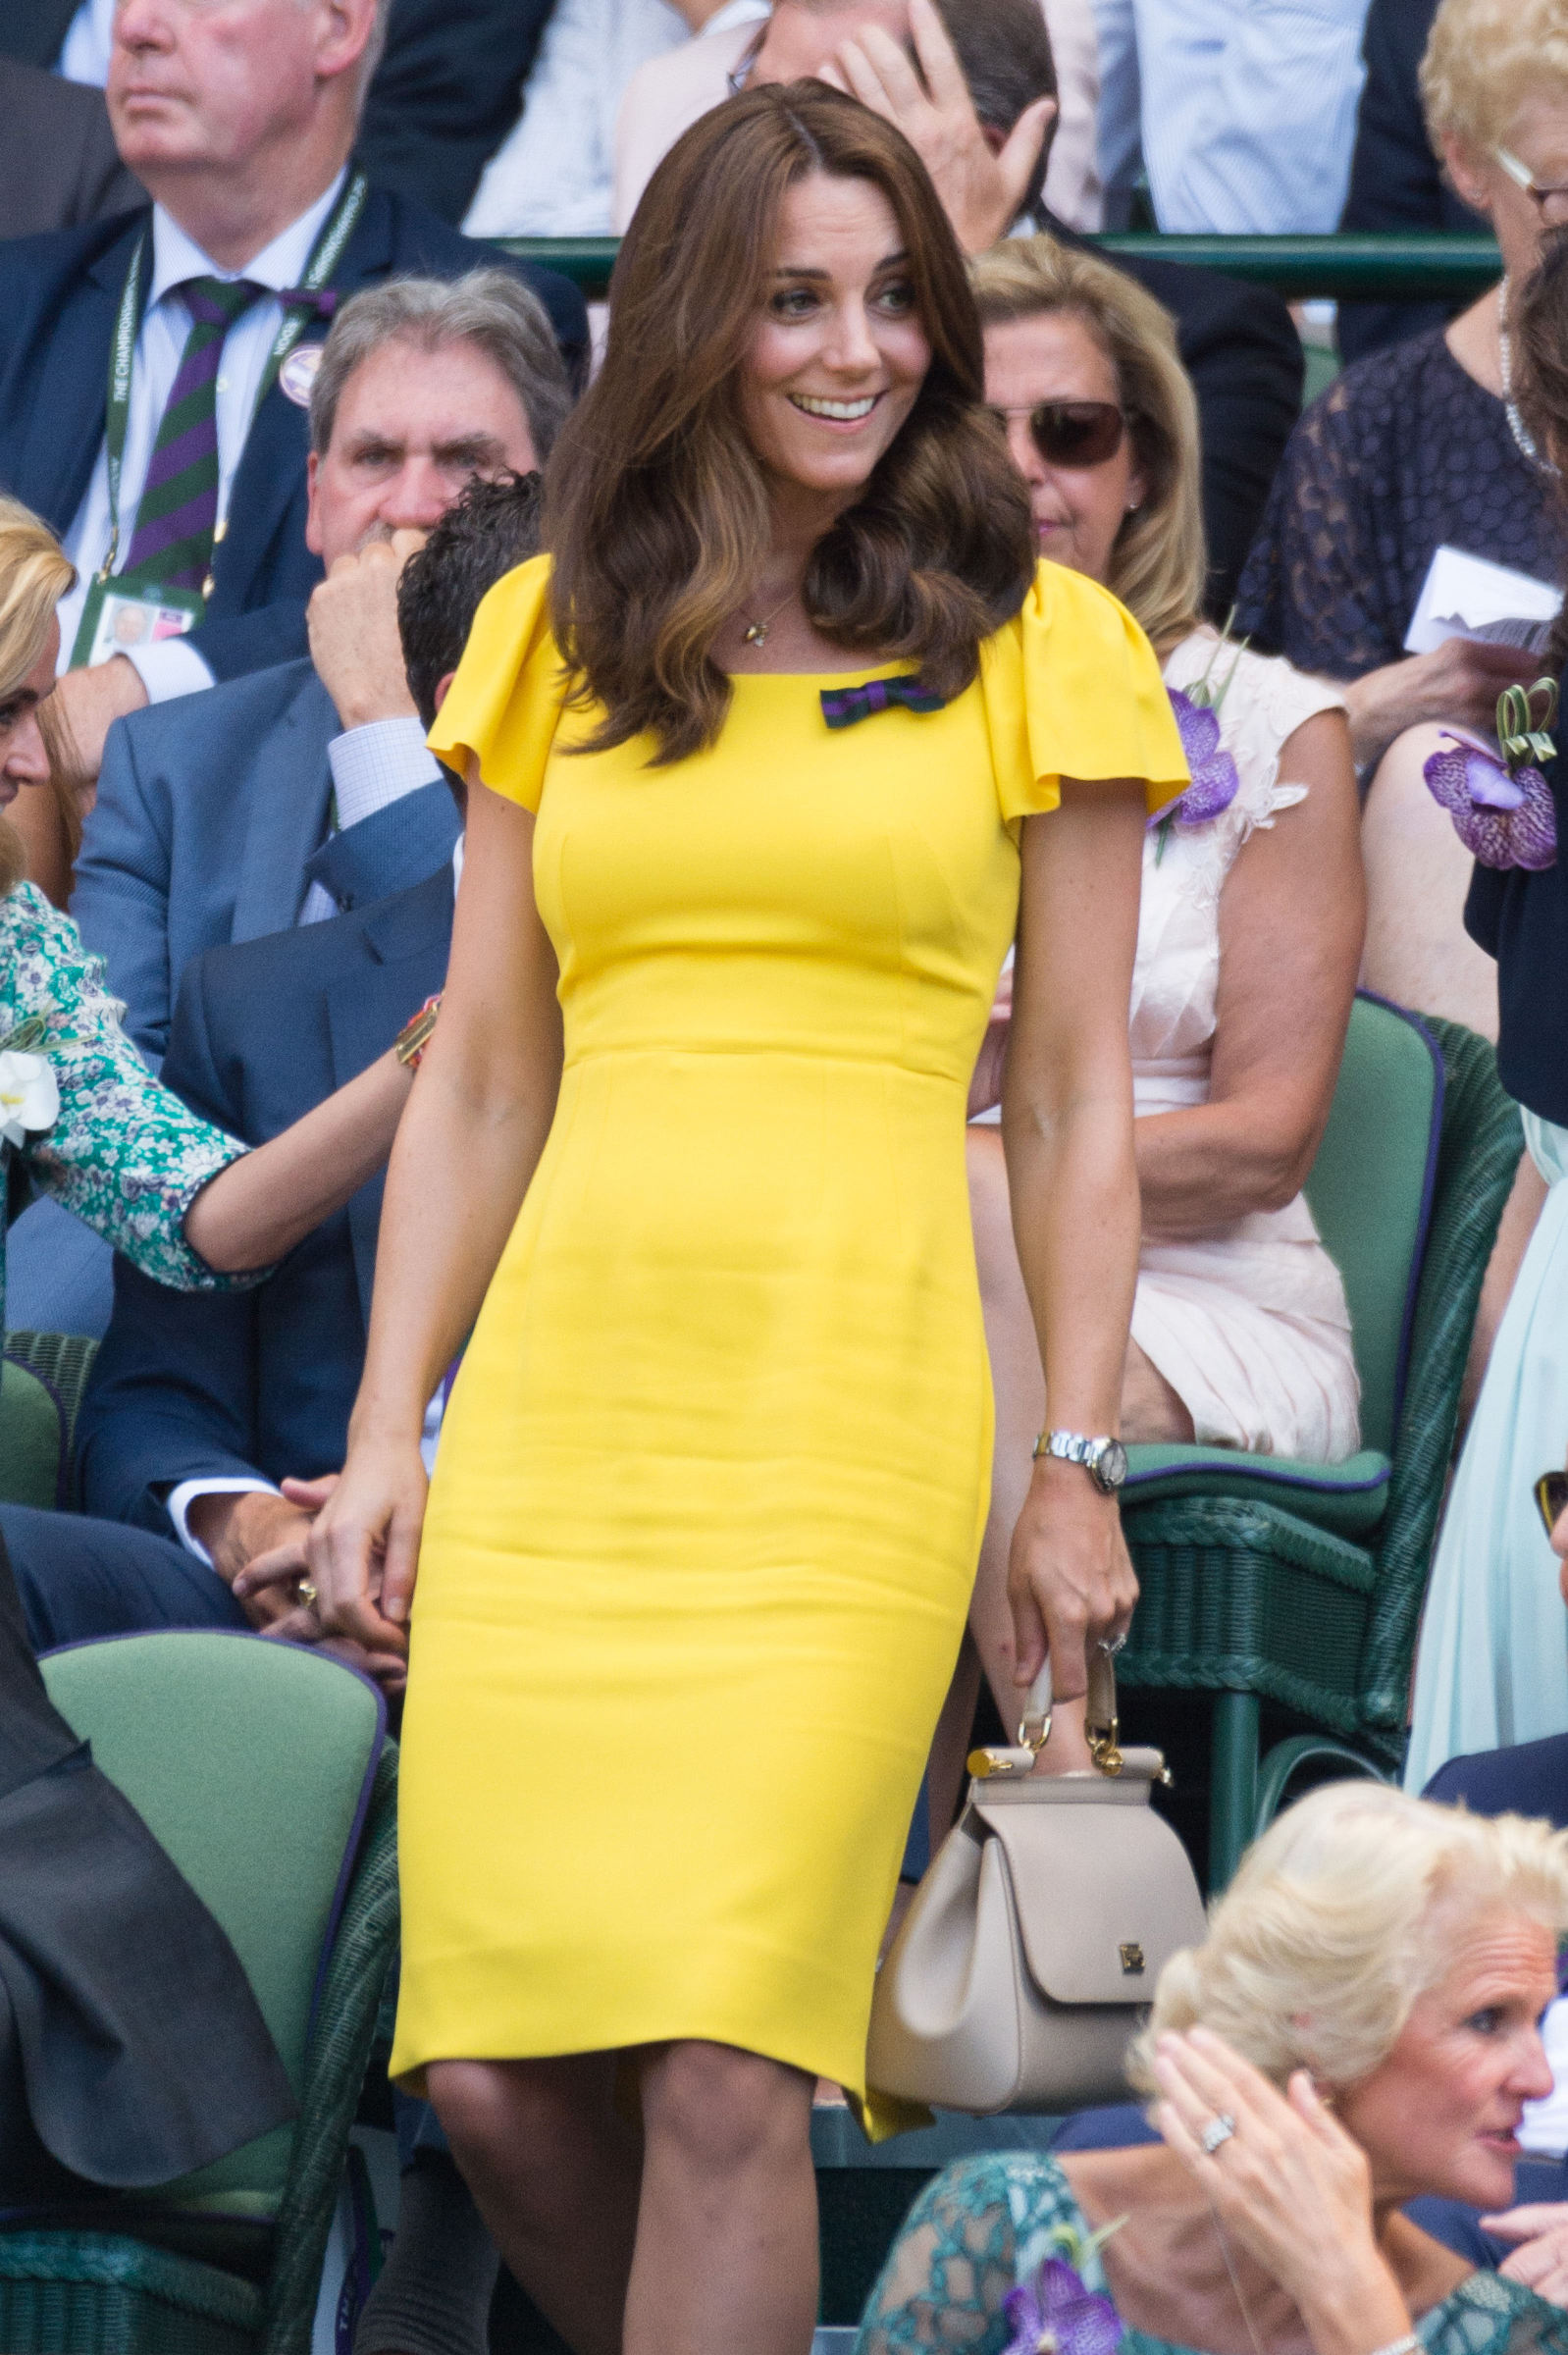 July 15, 2018 - London, United Kingdom - The mens singles finals in the royal box on the 13th day of the Wimbledon Tennis Championships 2018 held at the All England Lawn Tennis and Croquet Club. (Credit Image: ? Ray Tang via ZUMA Press)  Pictured: Kate Duchess of  Cambridge Ref: SPL5010143 150718 NON-EXCLUSIVE Picture by: SplashNews.com  Splash News and Pictures Los Angeles: 310-821-2666 New York: 212-619-2666 London: 0207 644 7656 Milan: +39 02 4399 8577 Sydney: +61 02 9240 7700 photodesk@splashnews.com  World Rights, No Argentina Rights, No Belgium Rights, No China Rights, No Czechia Rights, No Finland Rights, No Hungary Rights, No Japan Rights, No Mexico Rights, No Netherlands Rights, No Norway Rights, No Peru Rights, No Portugal Rights, No Slovenia Rights, No Sweden Rights, No Switzerland Rights, No Taiwan Rights